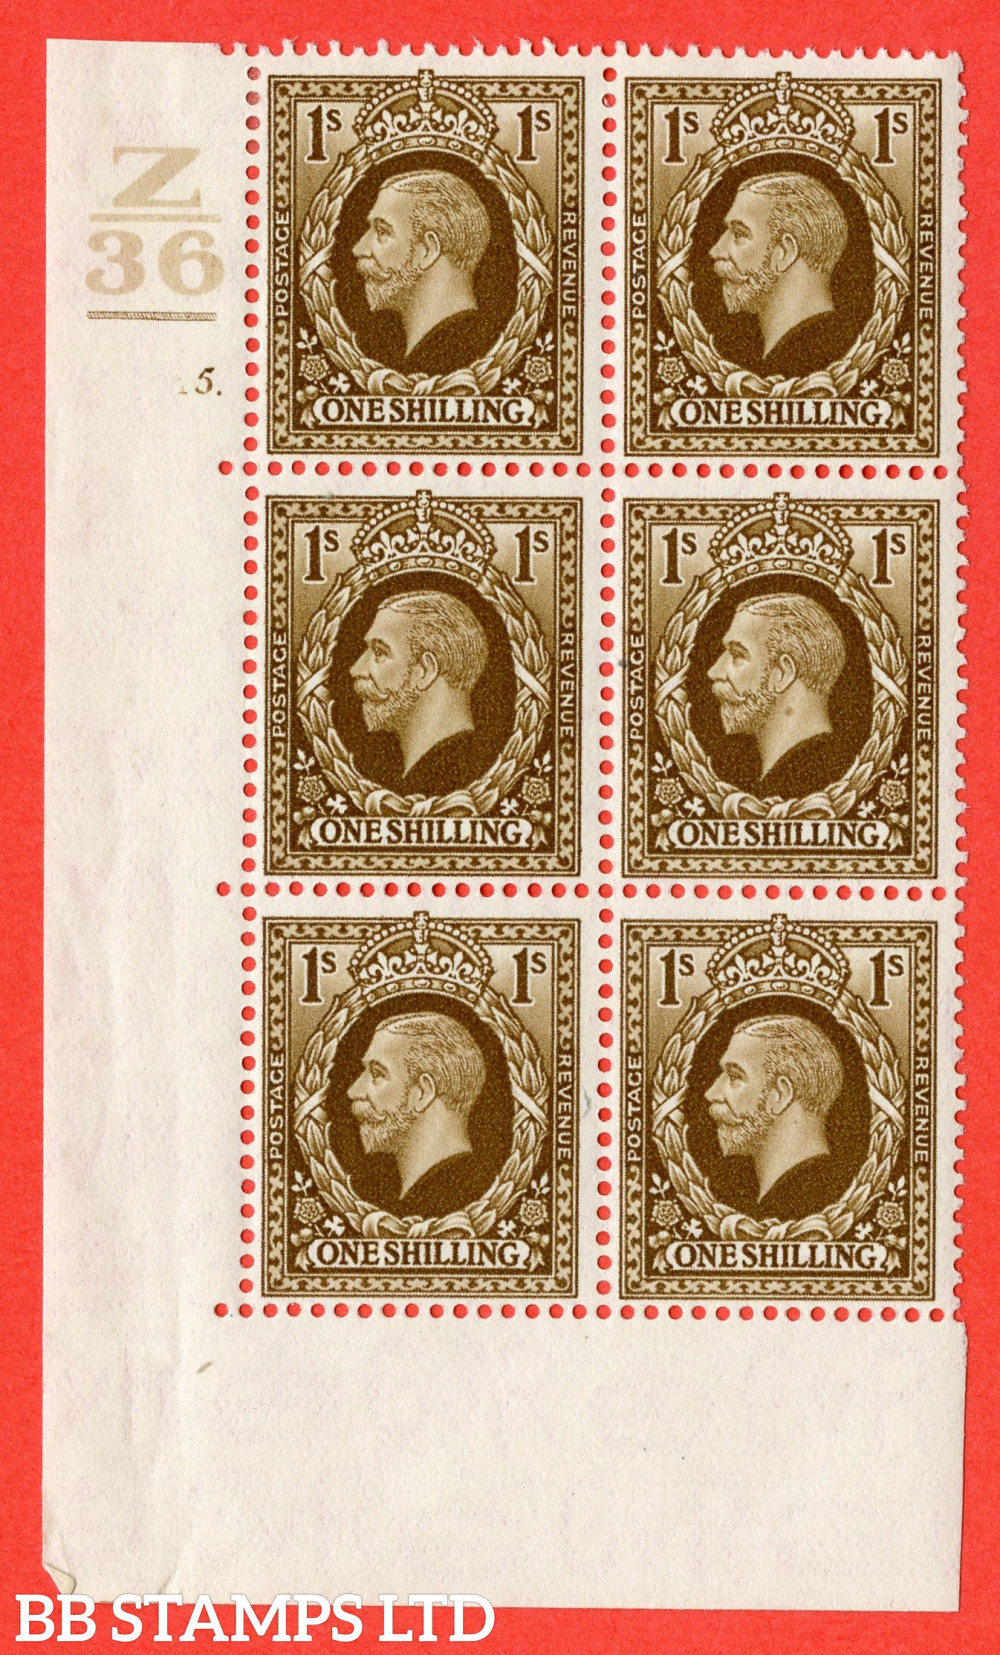 SG. 449. N62. 1/- Bistre-Brown. A fine mounted mint block of 6. Control Z36. 1 Bar. Cylinder 5 dot. Perf type 5 E/I.